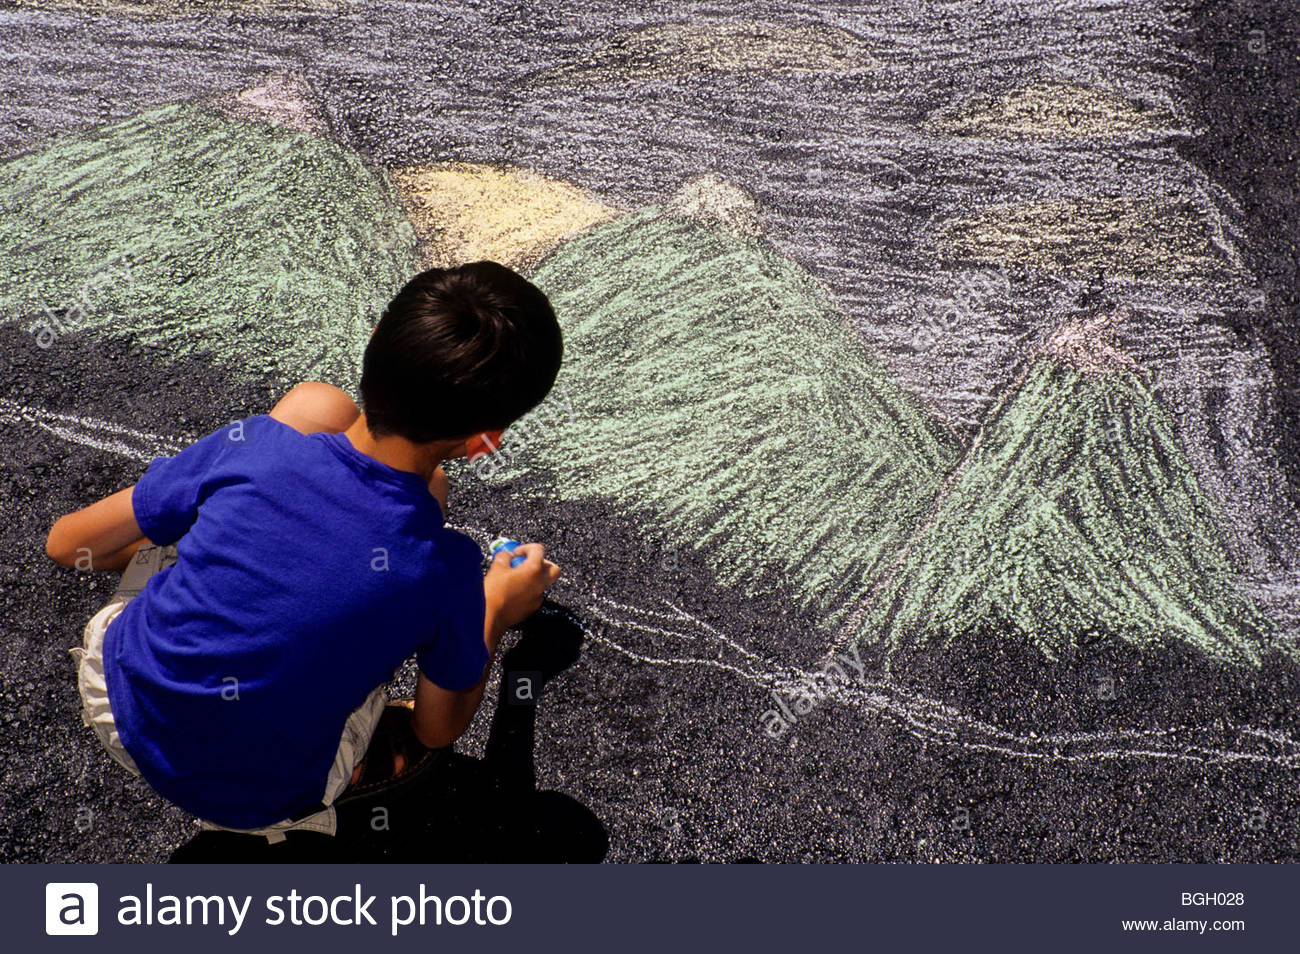 Alaska. A boy is creative with chalk drawing his vision of Alaska on a summer day. - Stock Image